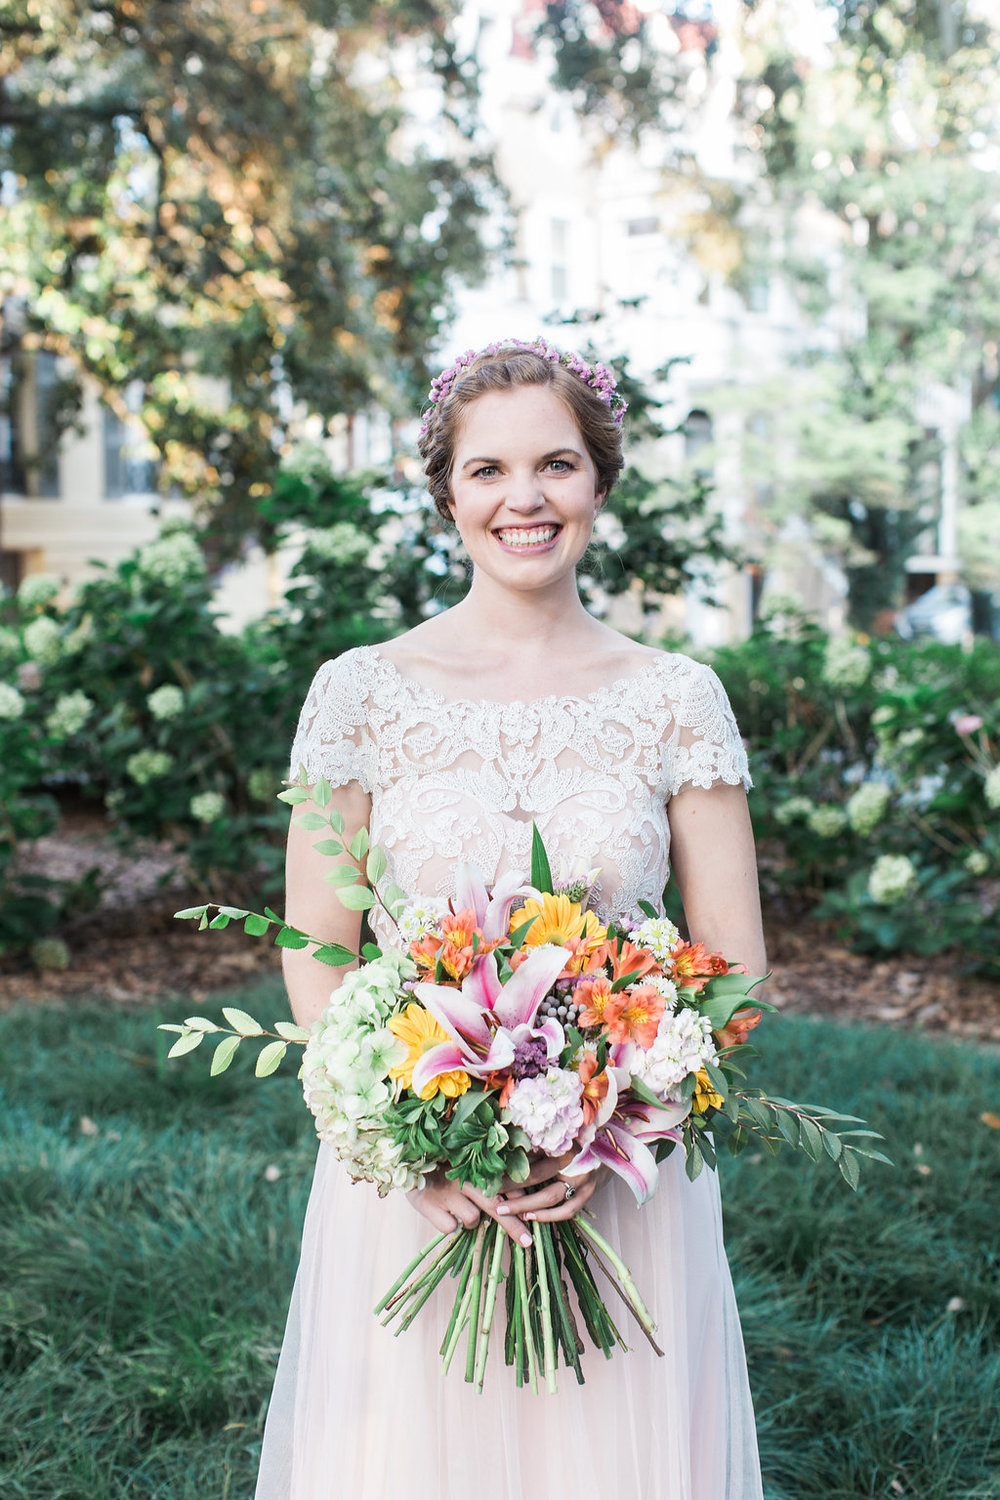 ivory-and-beau-bridal-boutique-savannah-wedding-dress-savannah-wedding-gown-savannah-bridal-boutique-savannah-bridesmaids-savannah-florist-savannah-florals-savannah-wedding-flowers-savannah-wedding-planner-savannah-wedding-coordinator-8.jpg